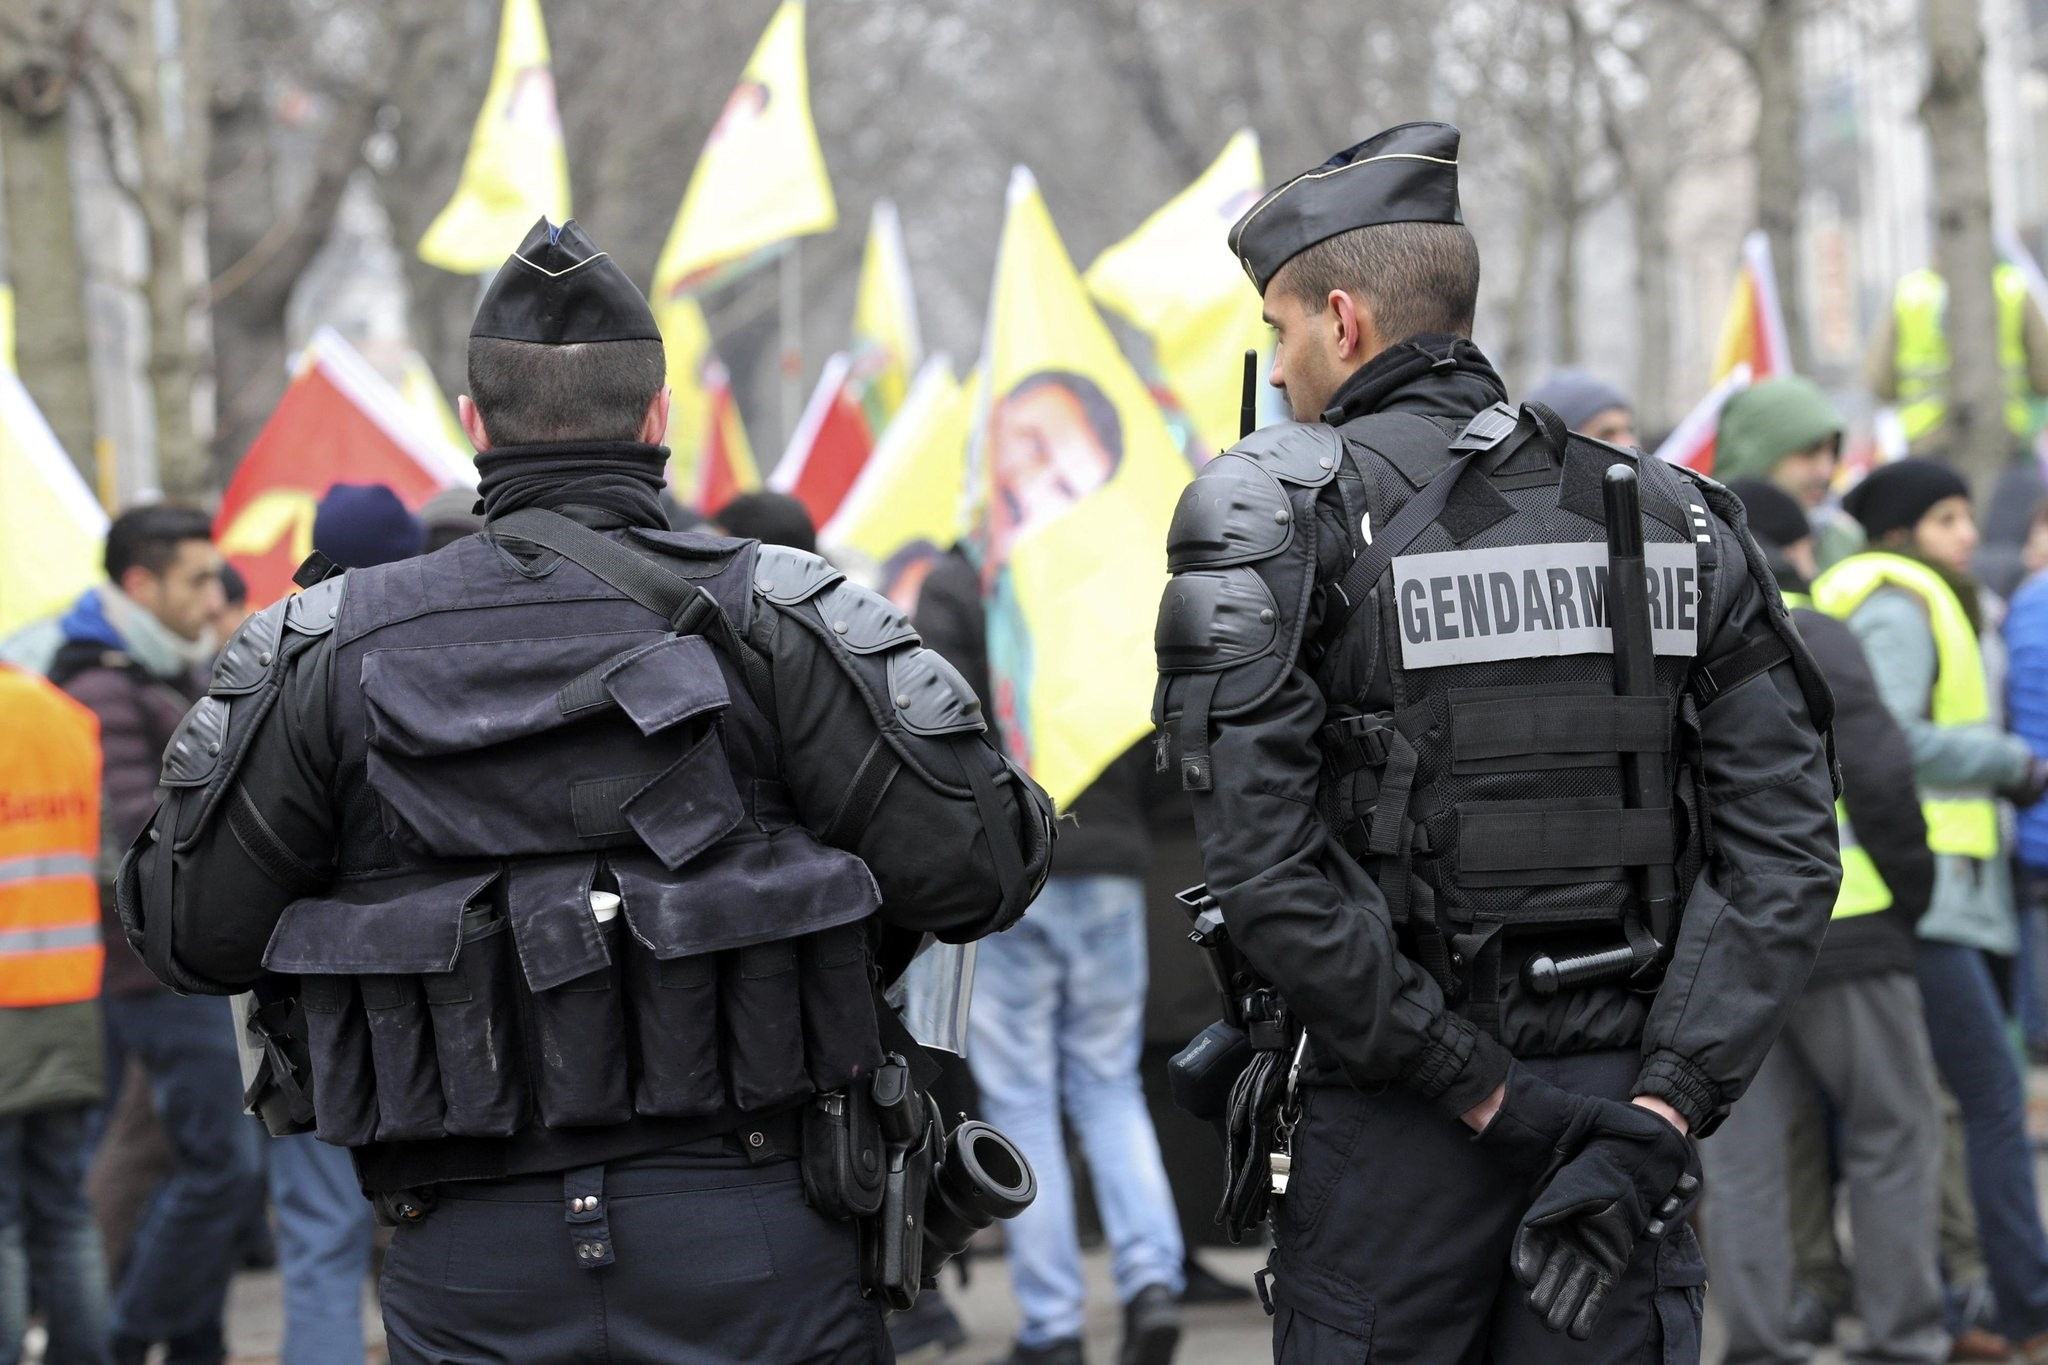 French gendarmes stand guard during a demonstration in support of PKK terrorists fighting against Turkey, Strasbourg, France, Feb. 11.